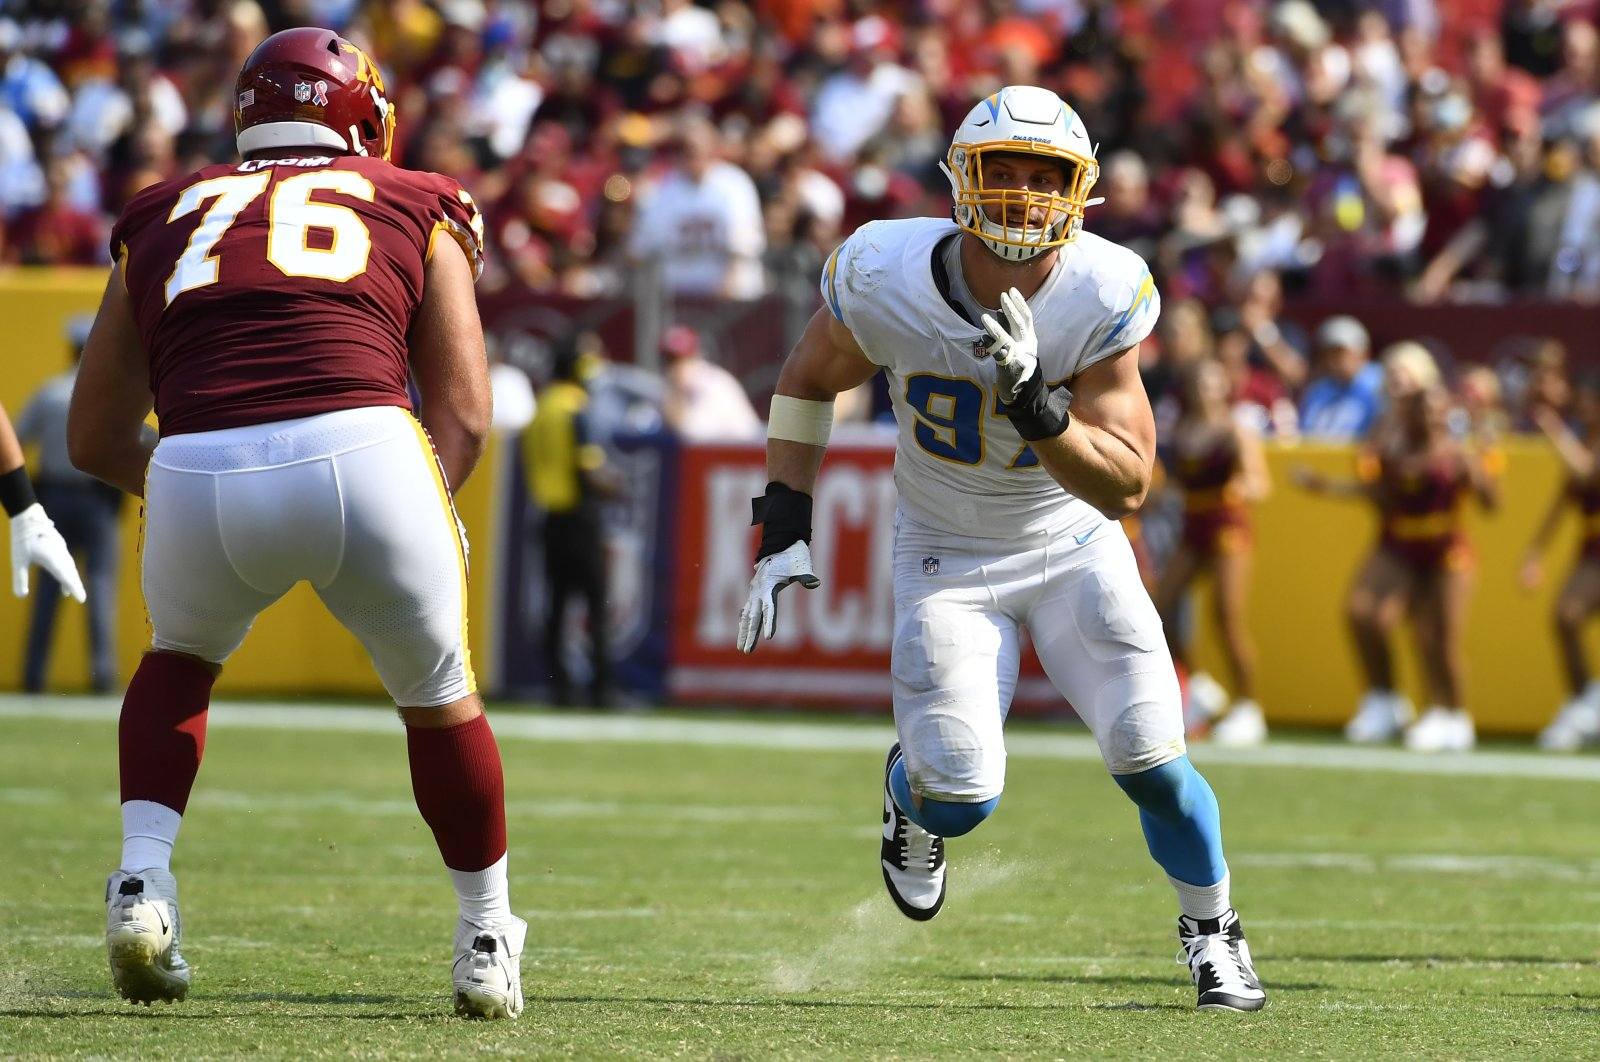 Los Angeles Chargers defensive end Joey Bosa (97) rushes the passer against the Washington Football Team during the second half at FedExField, Landover, Maryland, U.S, Sept. 12, 2021. (Brad Mills-USA TODAY Sports via REUTERS)